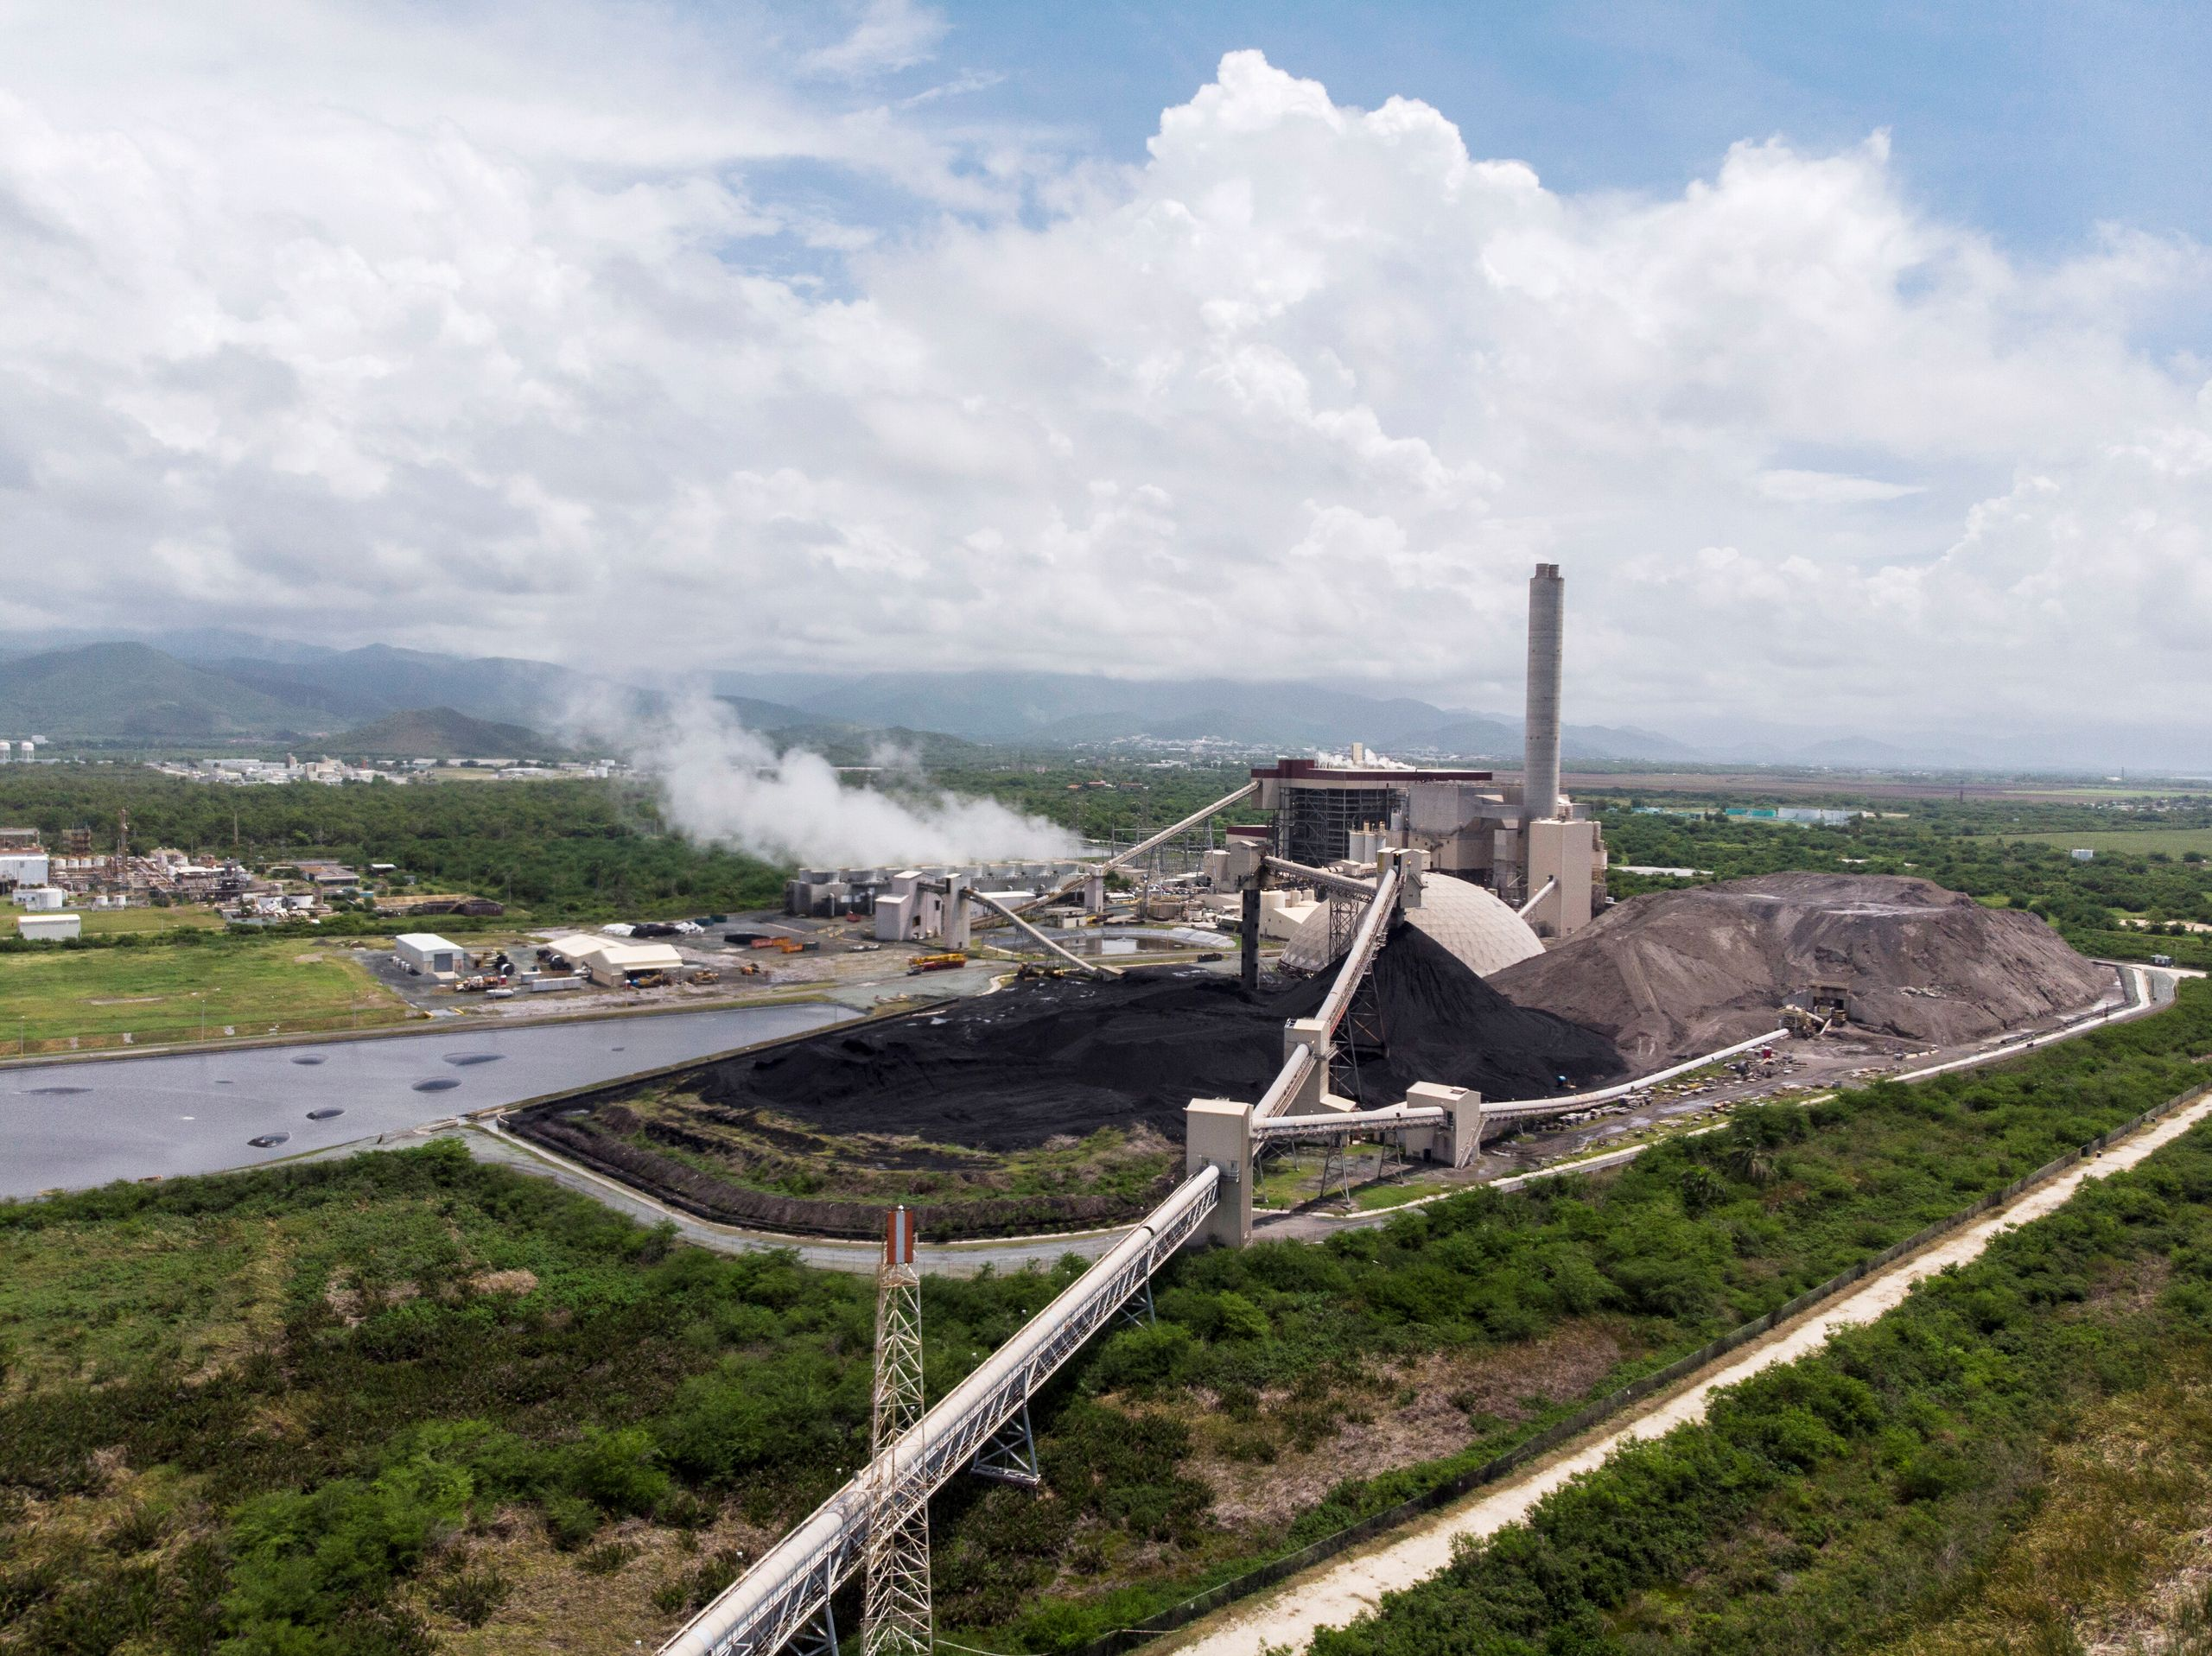 Residents of Guayama are fighting against the AES Energy Plant, a coal-burning facility that is contaminating the aquifers an